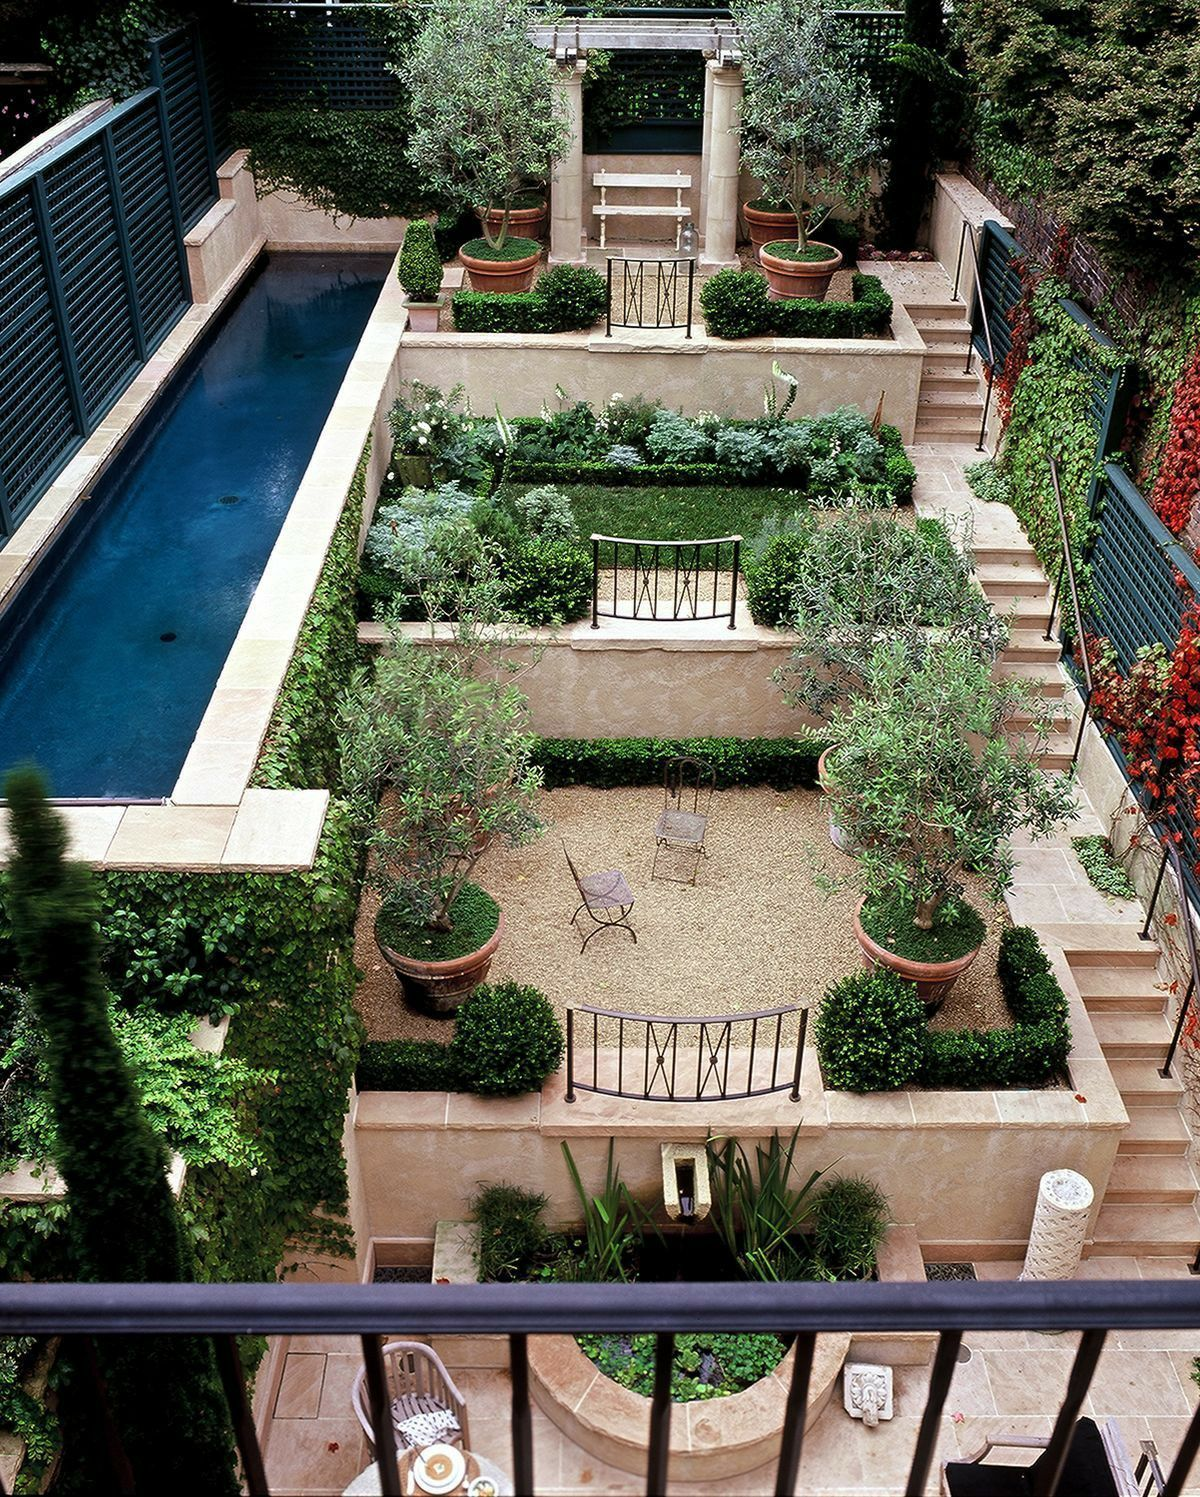 Terrace garden #terracegardendesign Terrace garden with pool #Terracegarden #pool #terracepool #terracegardendesign